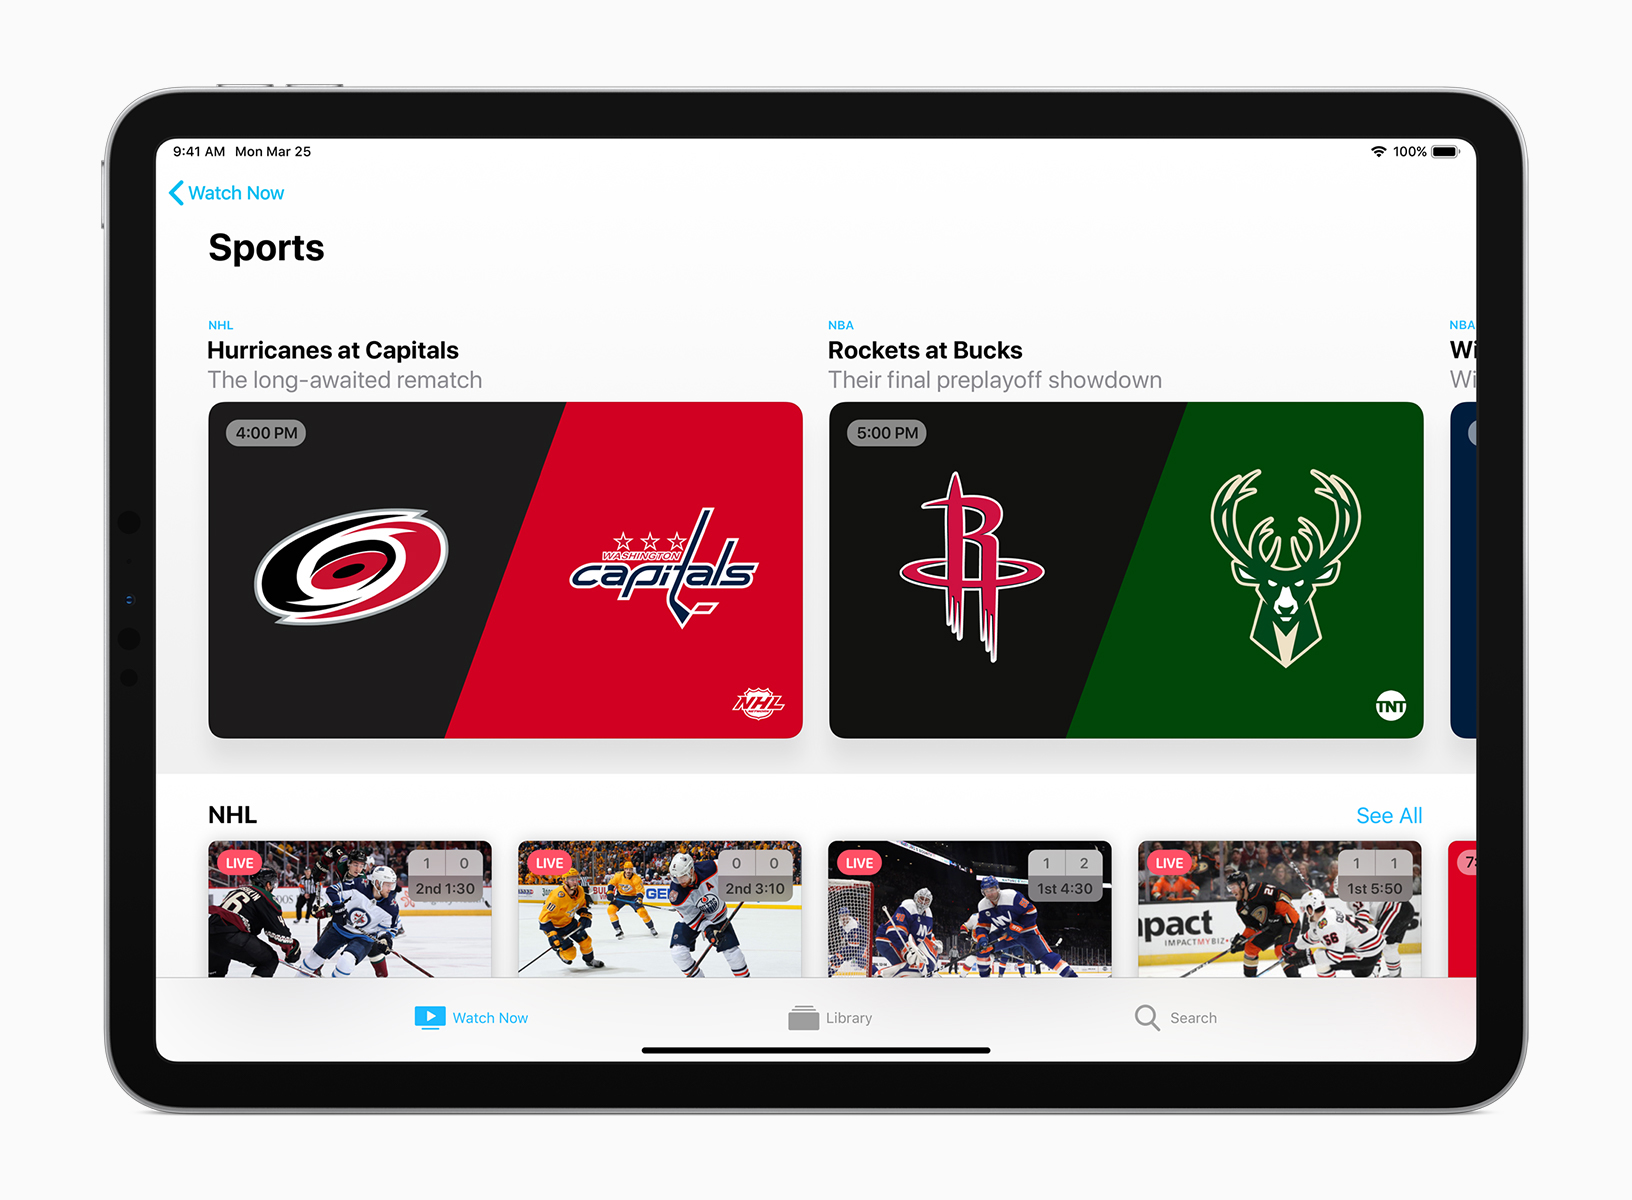 Apple_TV_app_iPad_sports_032519.jpg